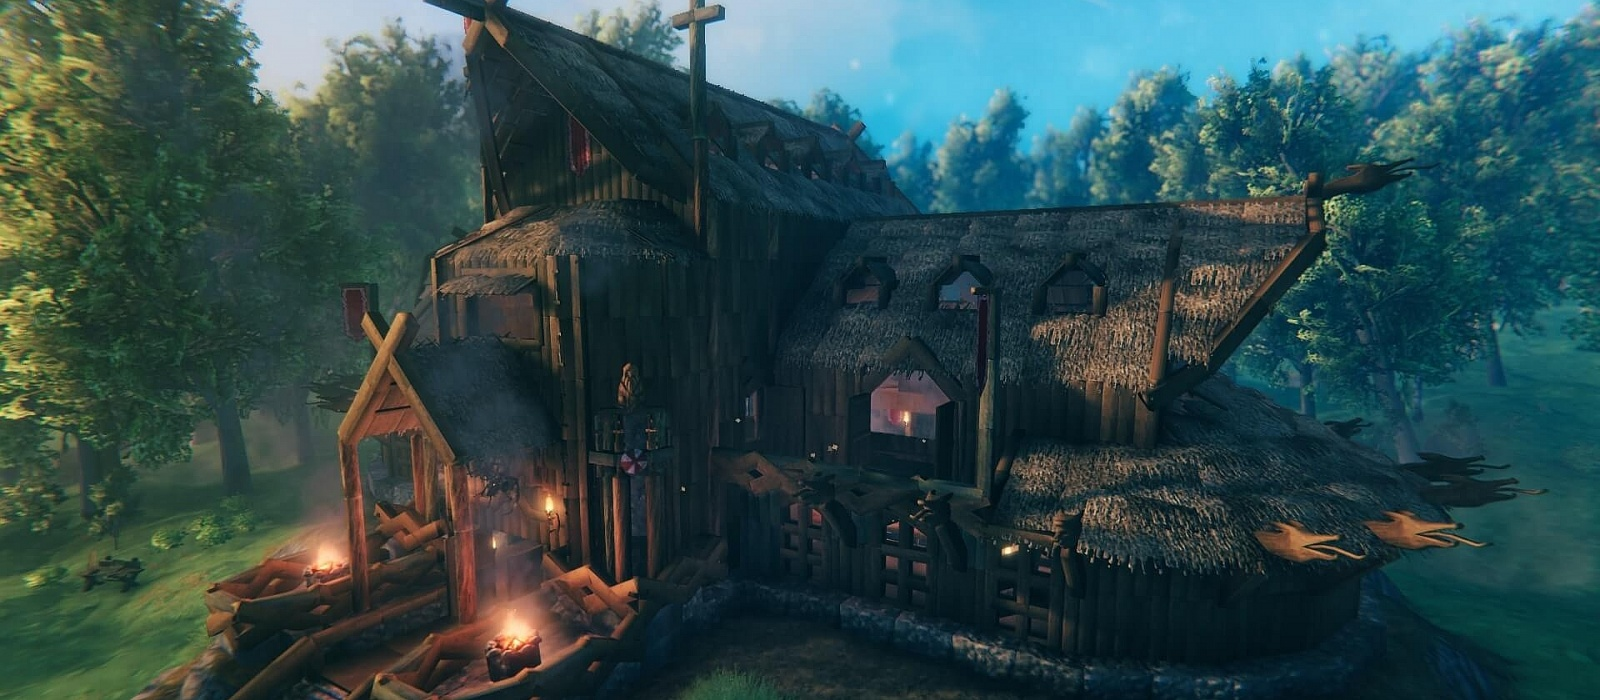 How to repair buildings in Valheim. How to understand that a house is breaking down and rotting